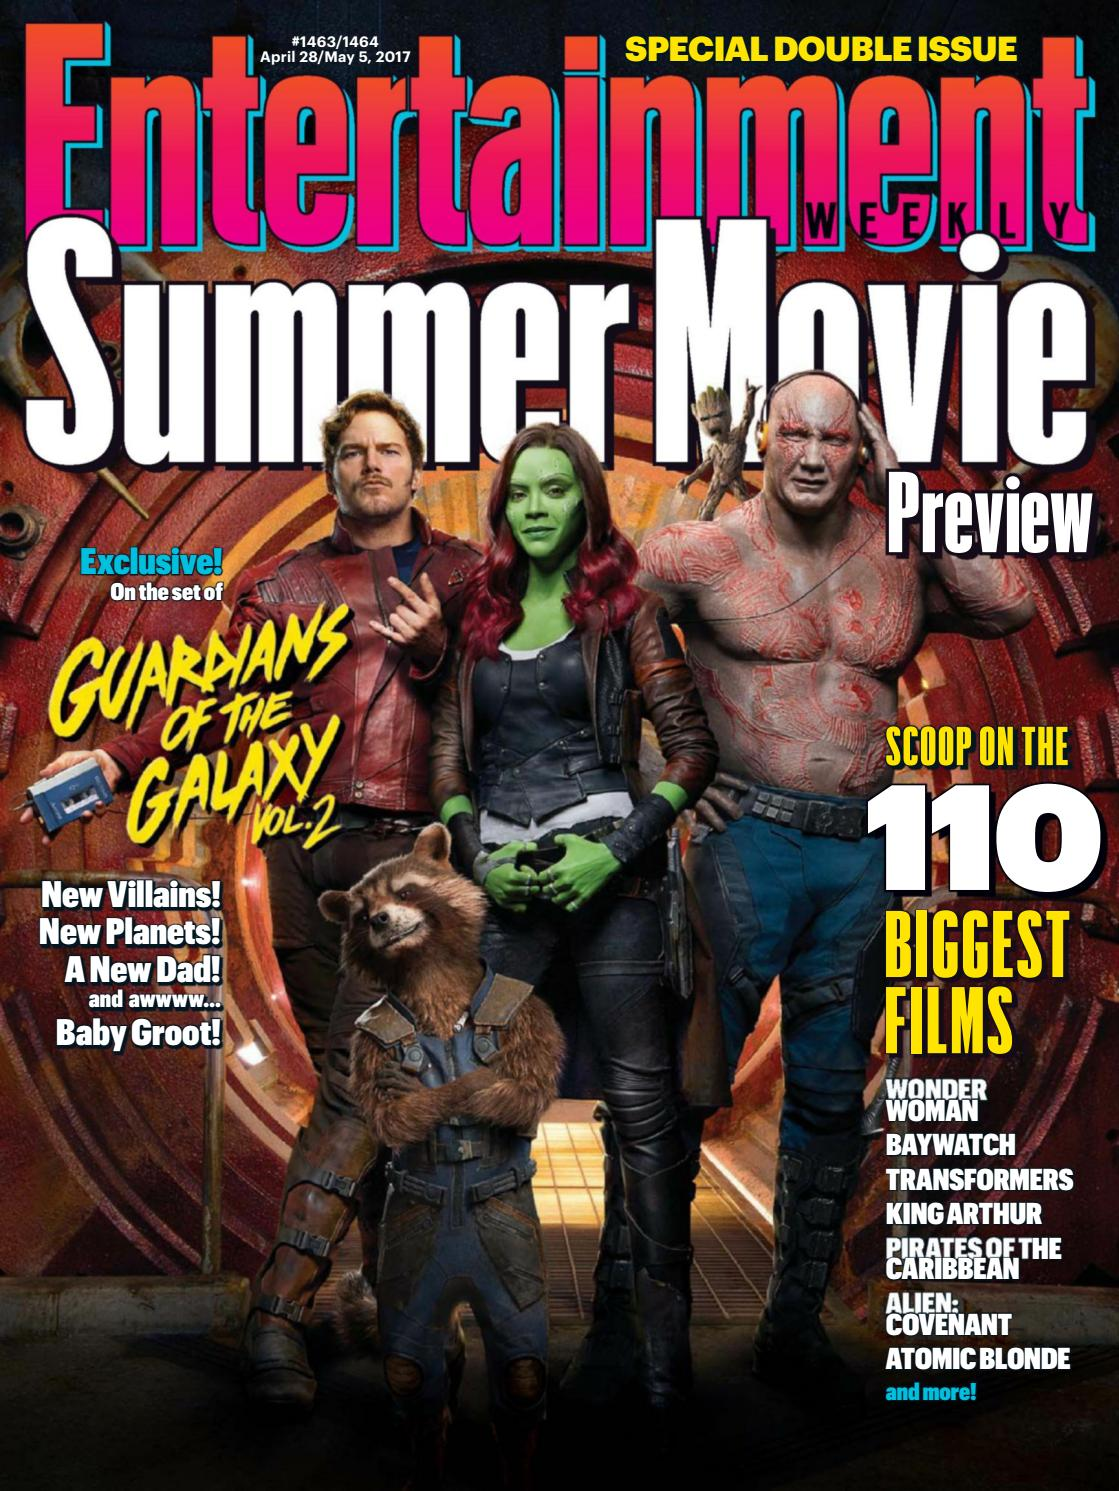 Entertainment weekly april 28 may 5 2017 by mimimi946 - issuu c78681b4c